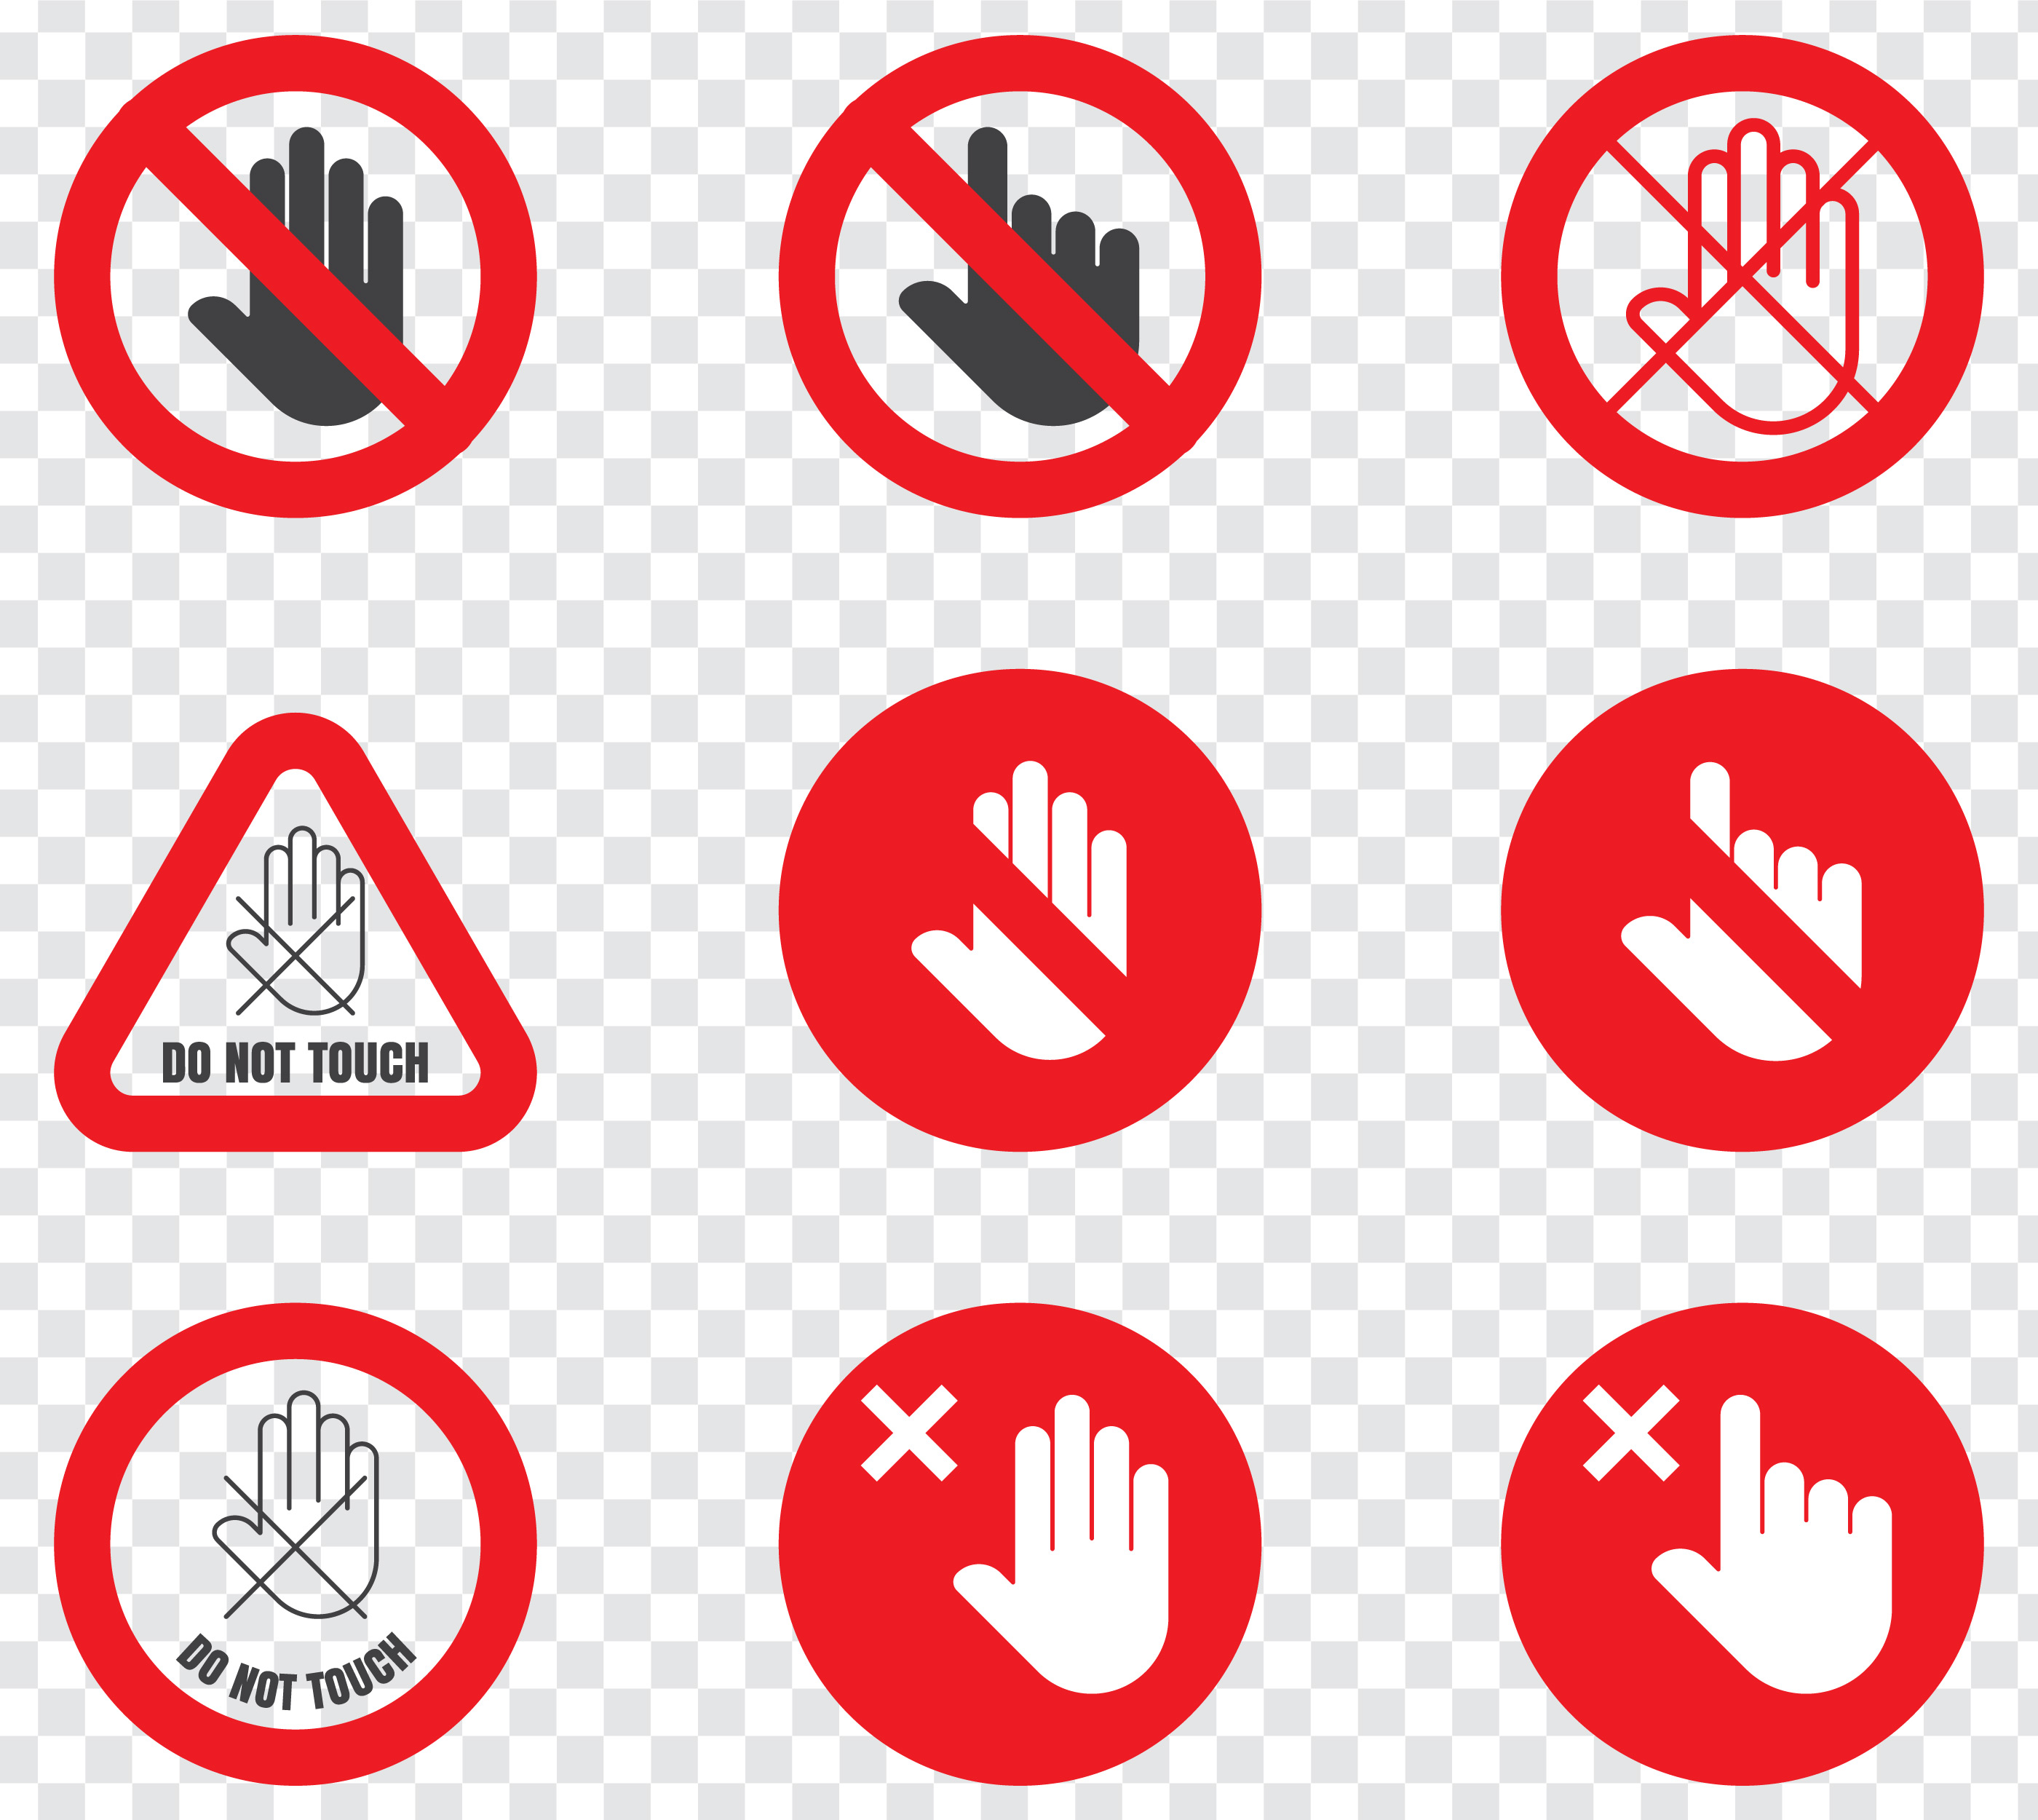 Prohibition Sign Do Not Touch - Download Free Vectors ...